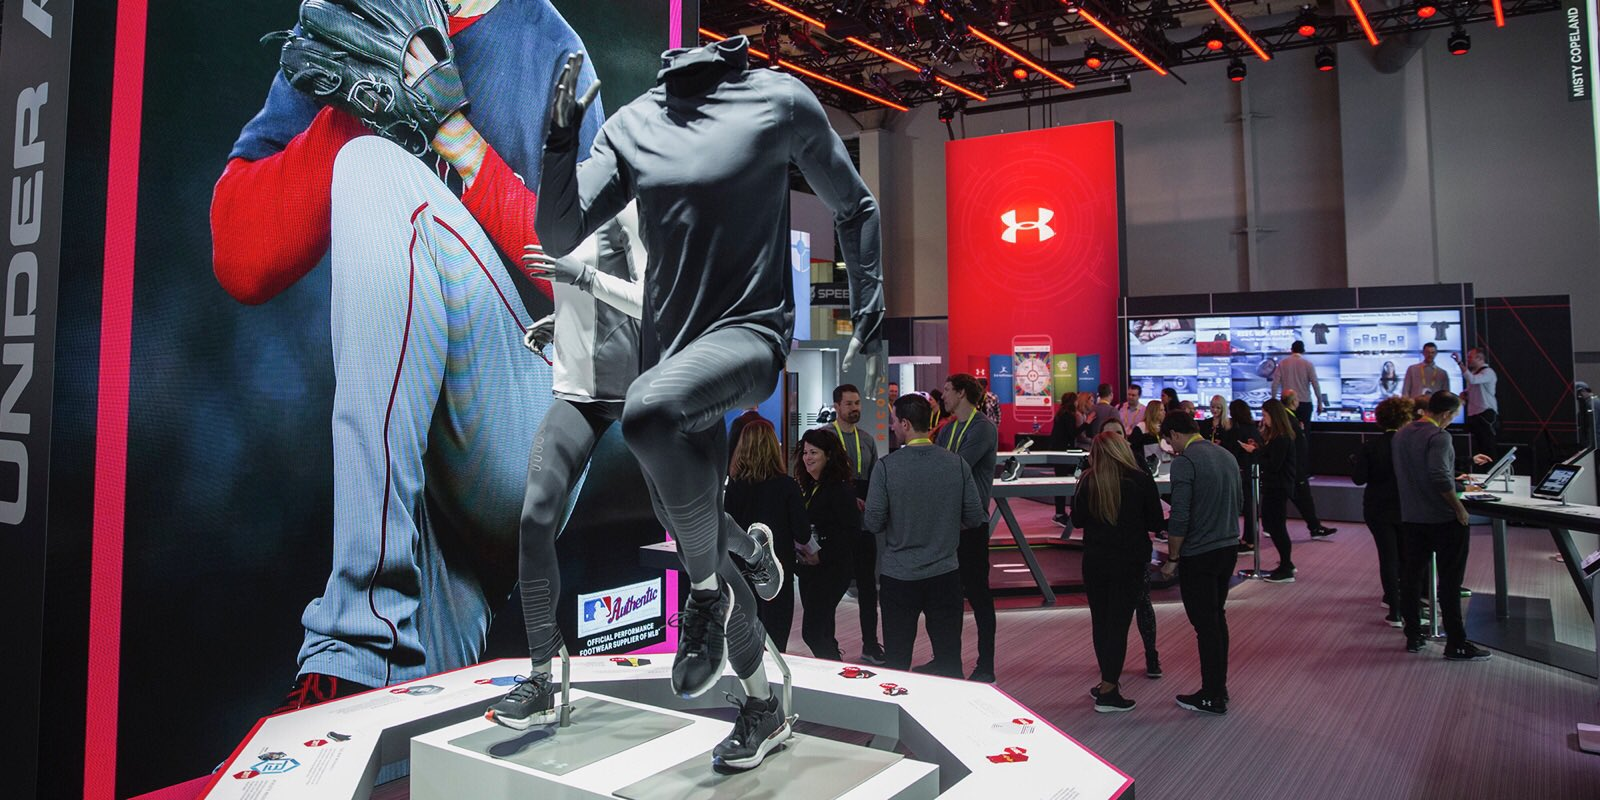 Under Armour I Will Innovation Under Armour on Twitte...